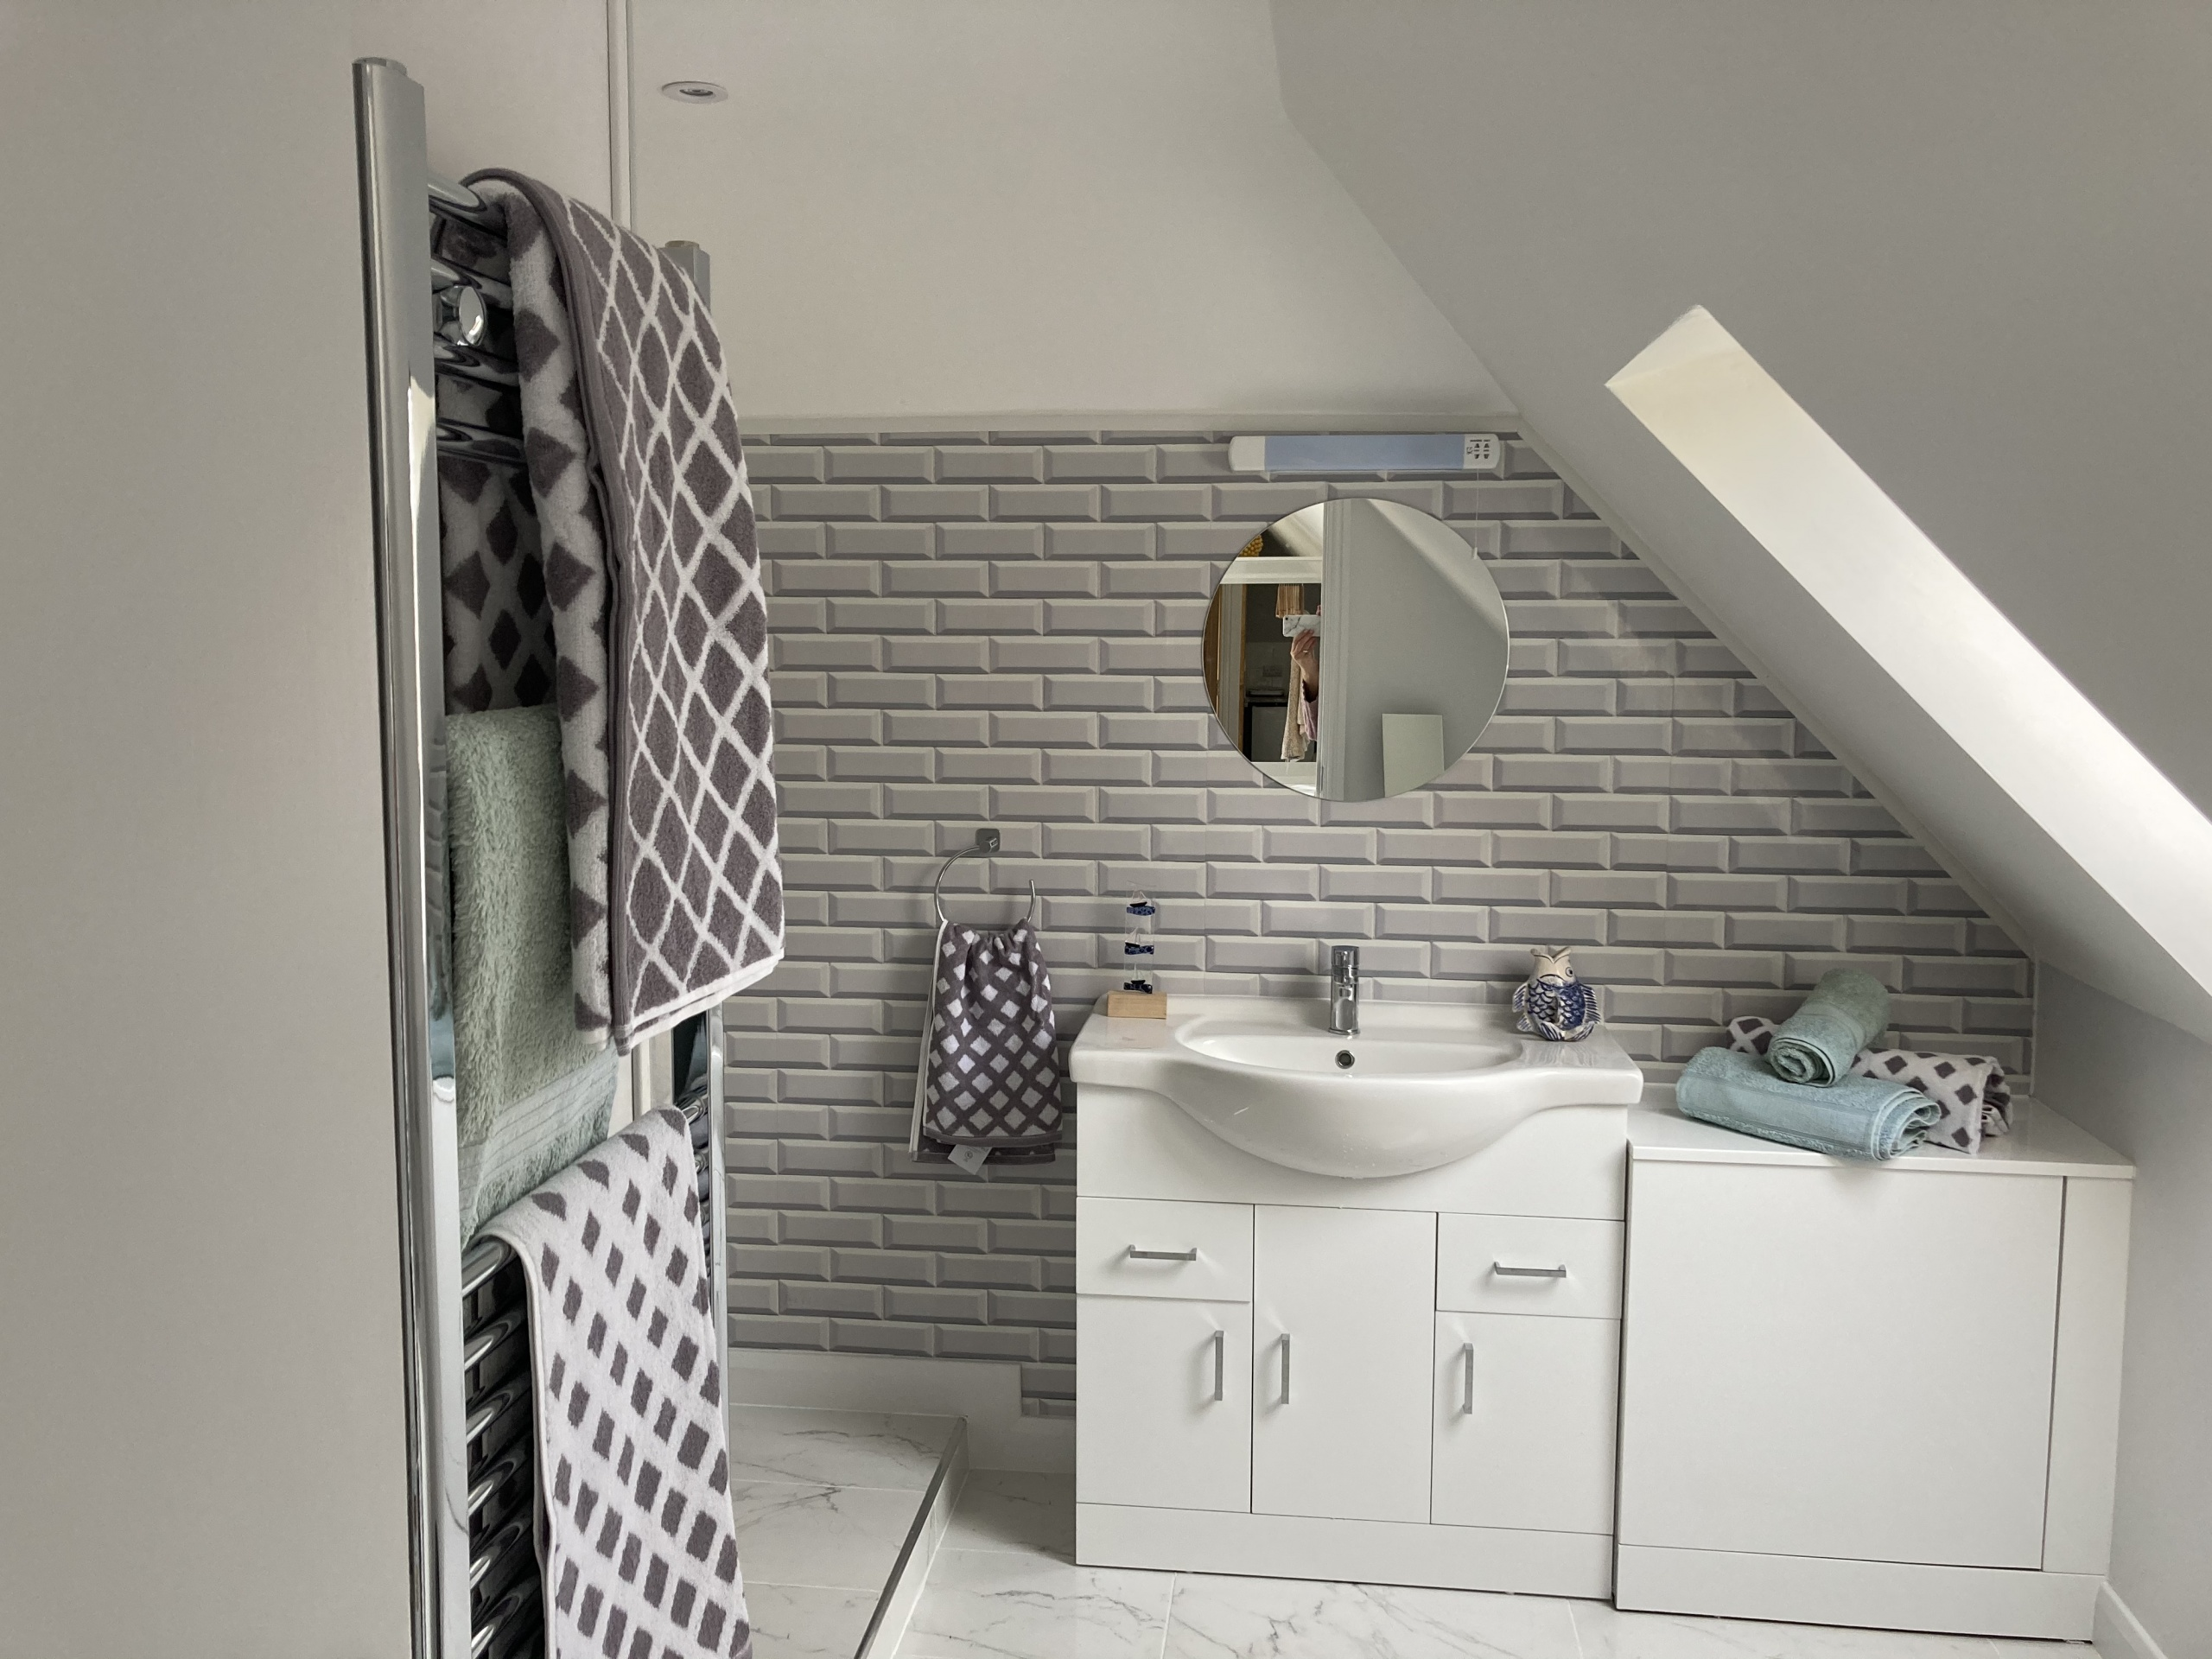 There is so much space in this bathroom with a his and hers vanity unit